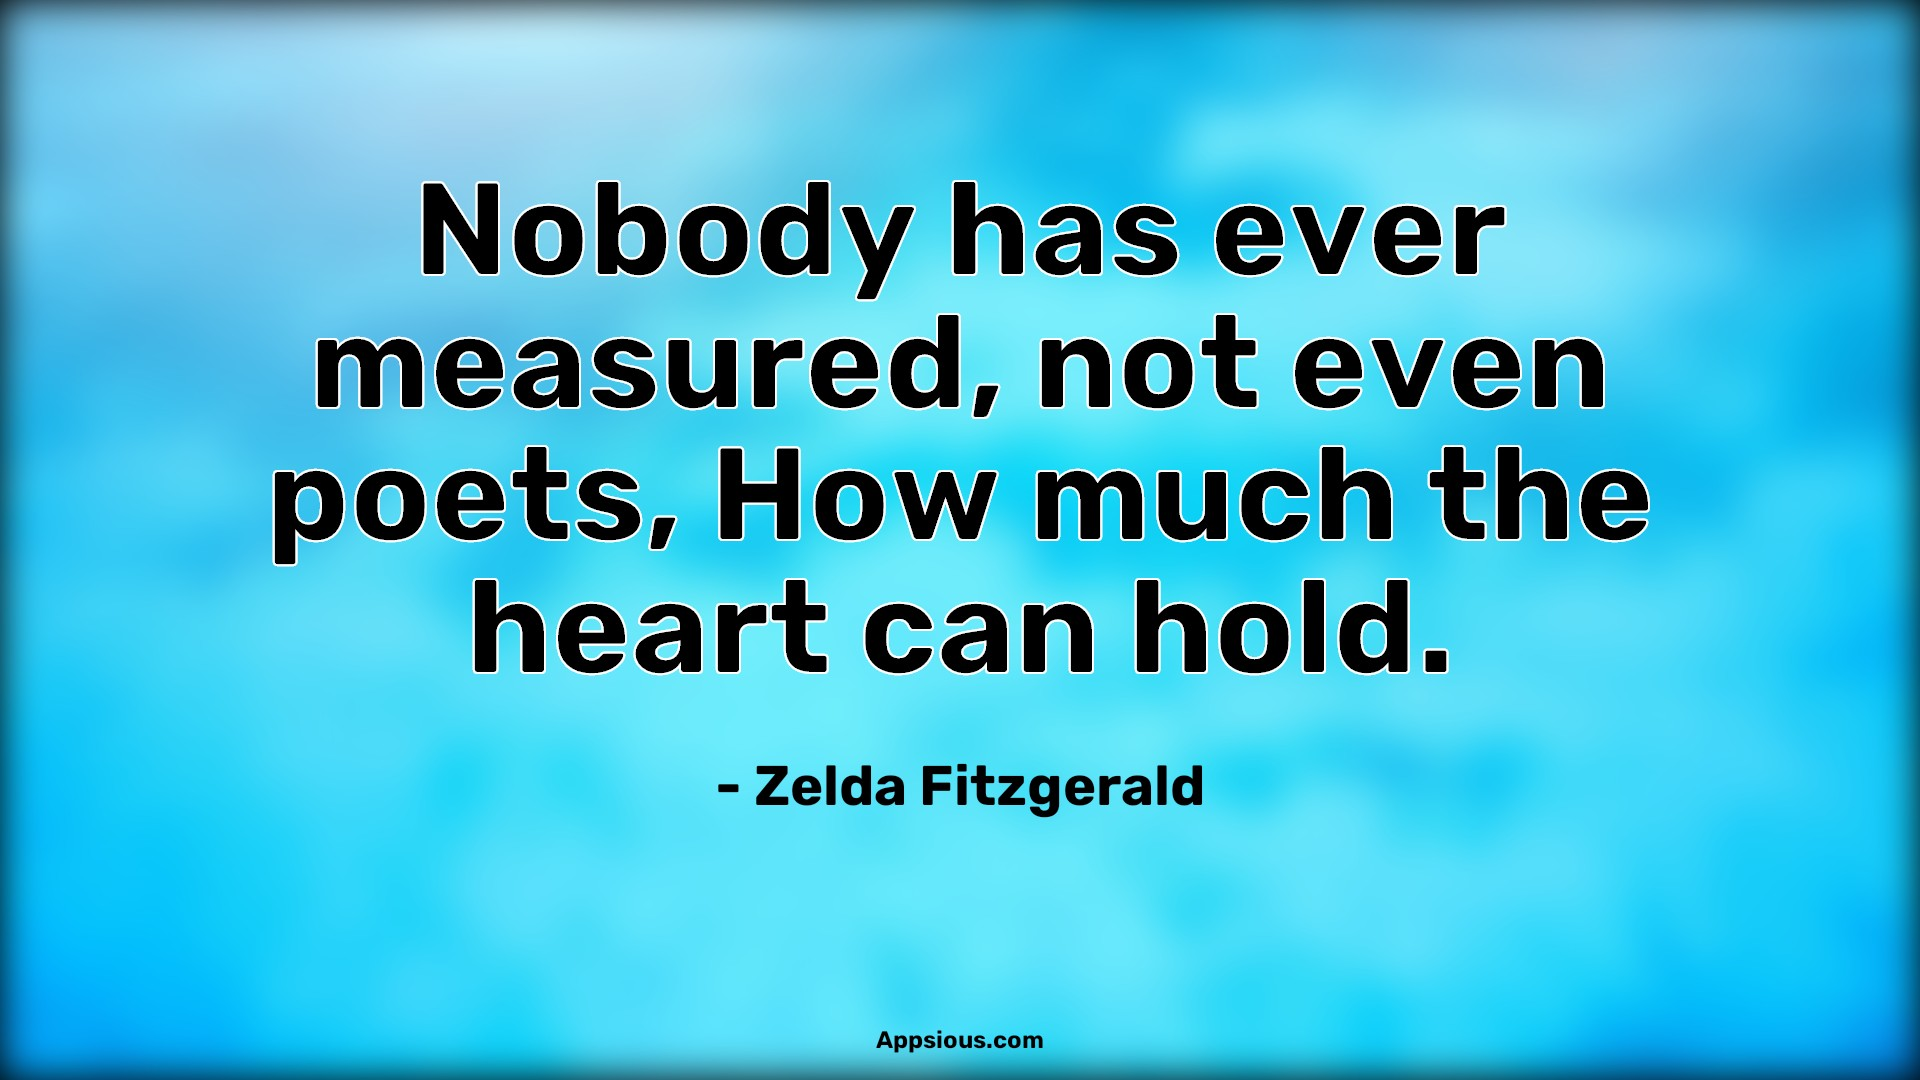 Nobody has ever measured, not even poets, How much the heart can hold.